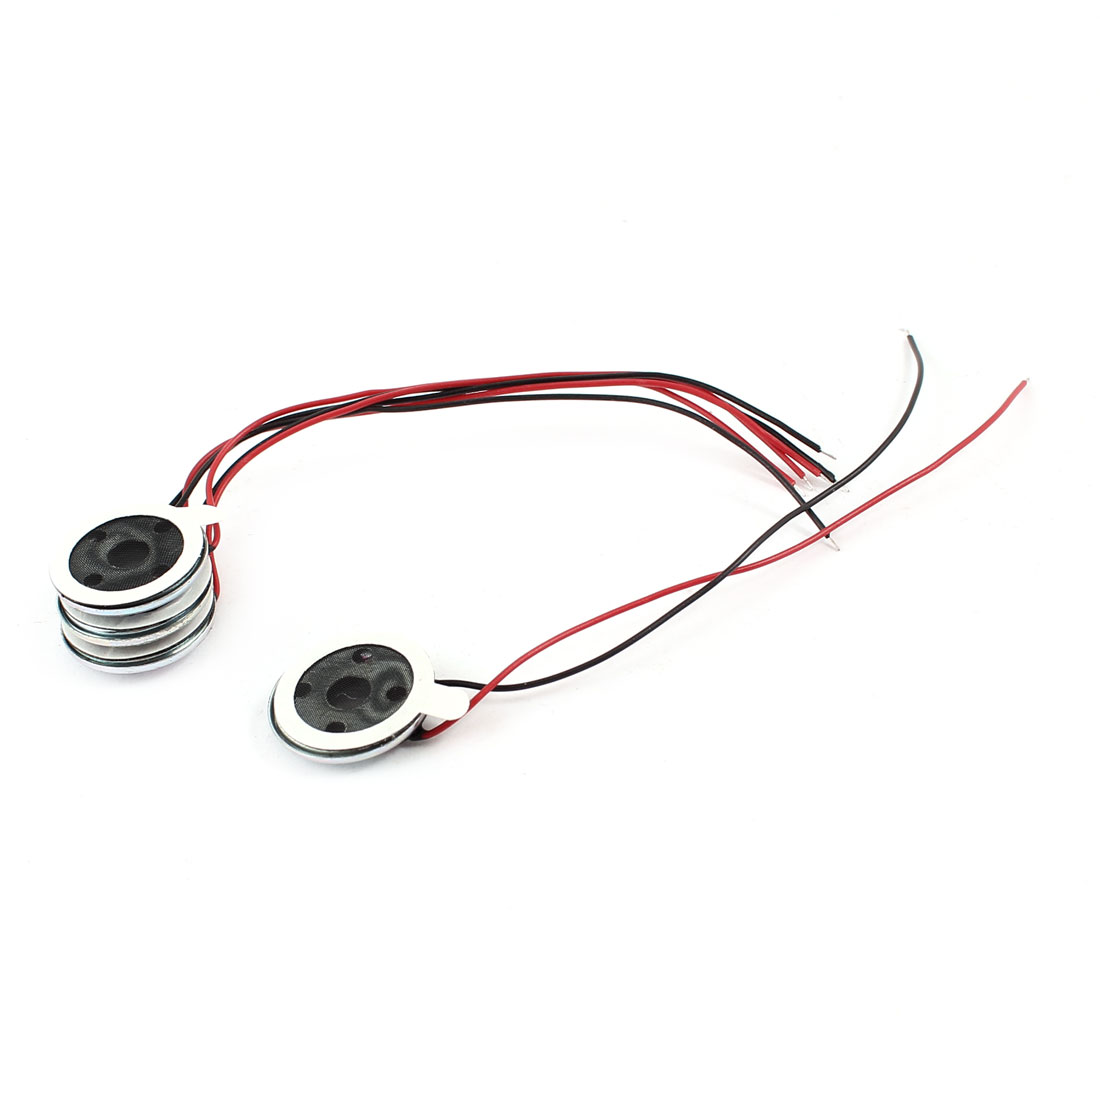 4 Pcs 0.5W 8 Ohm 15mm Dia Metal Housing Cellphone Magnet Speaker Loudspeaker